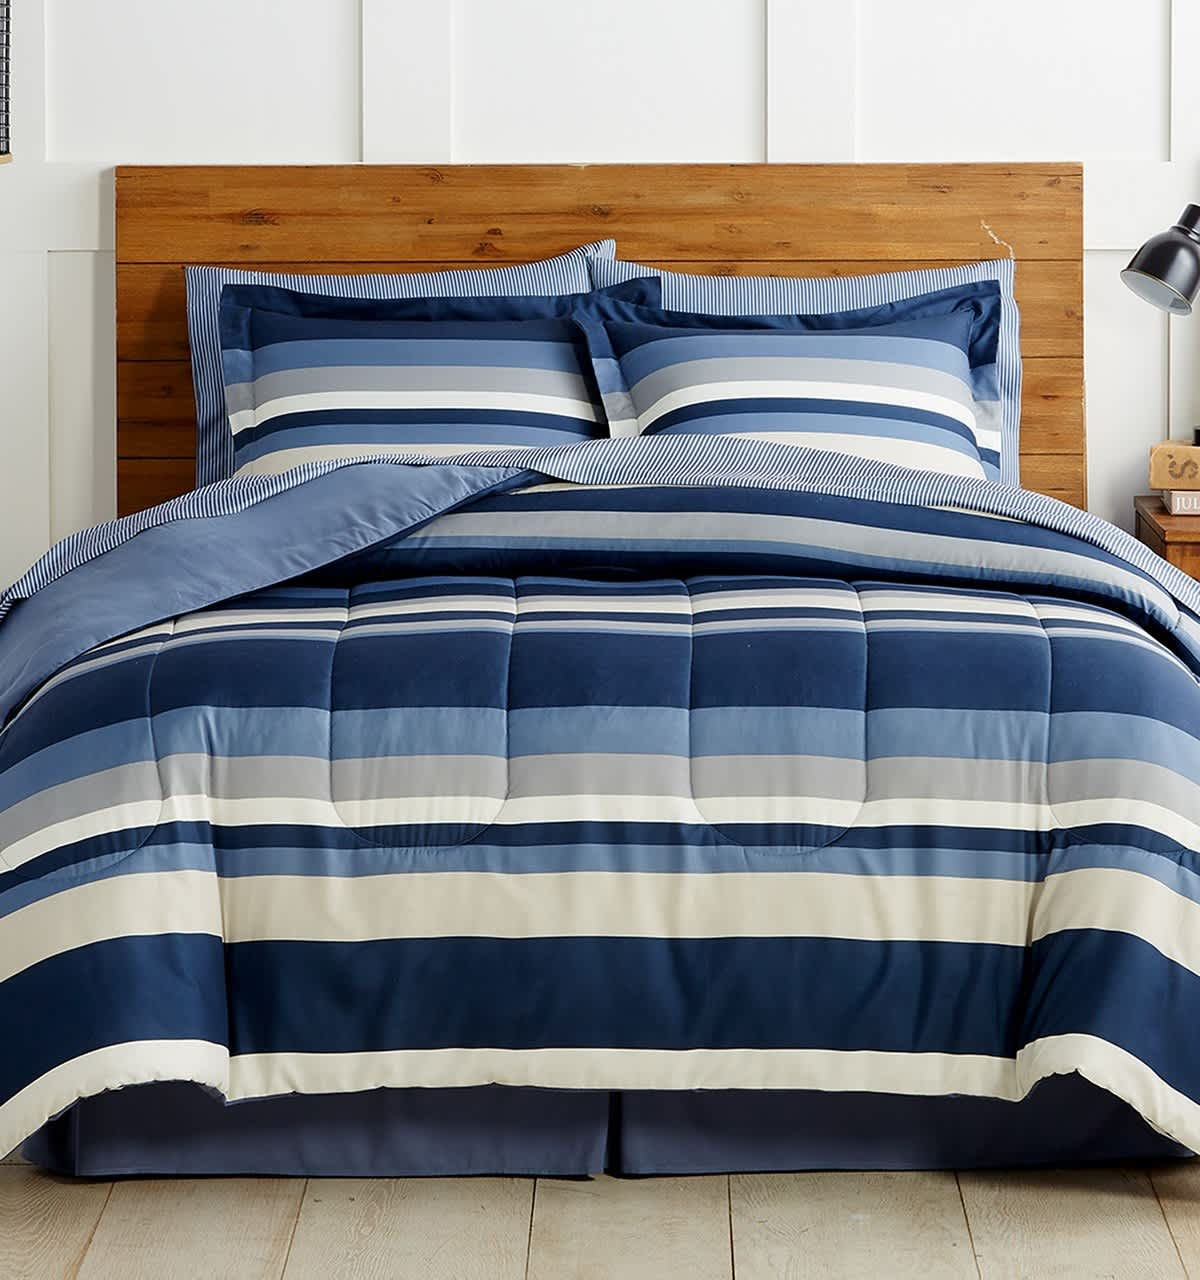 8-Piece Comforter Sets at Macy's